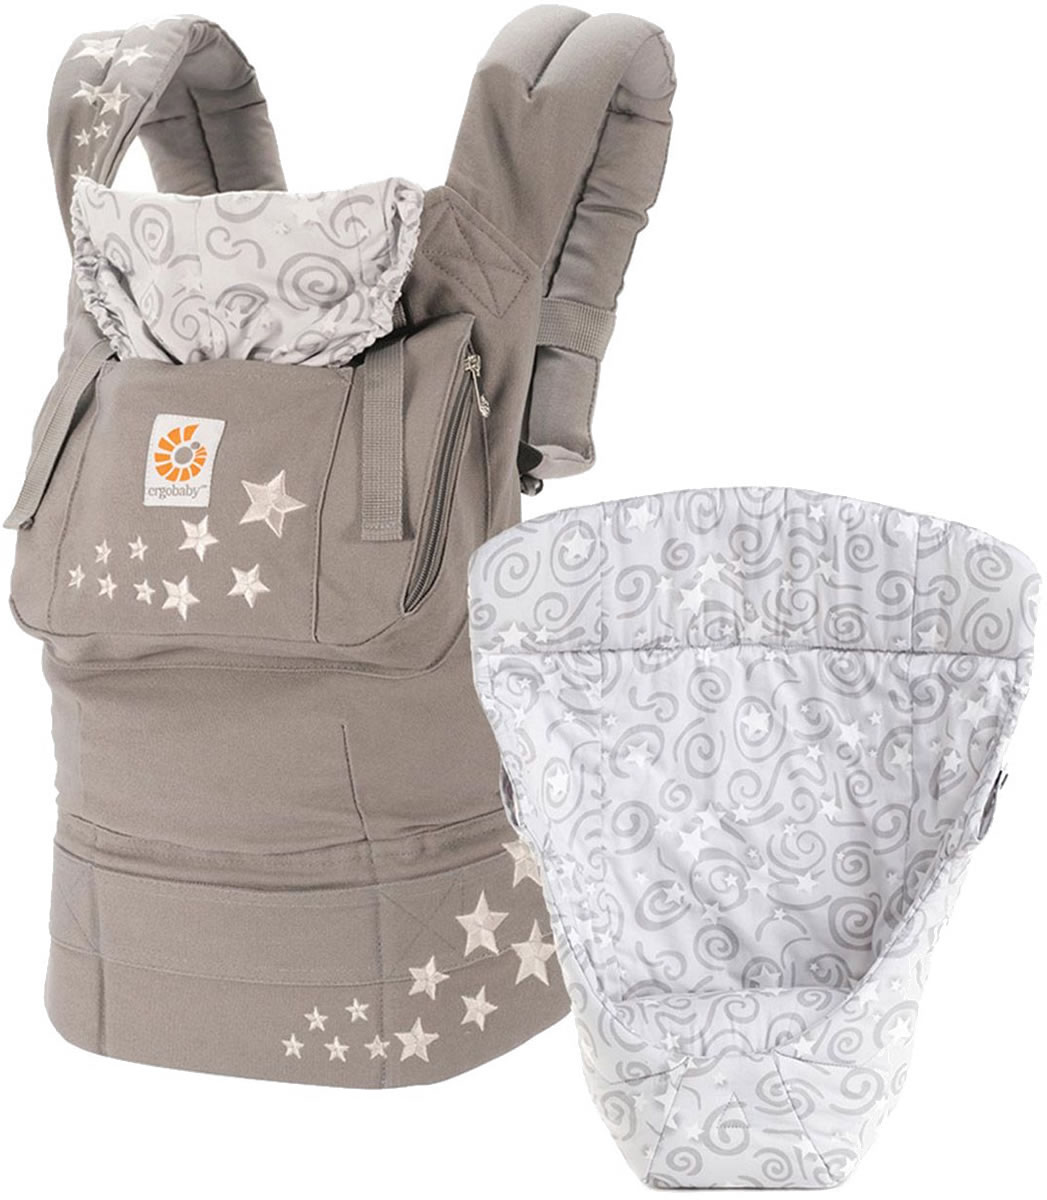 2f8af4d8637 ergobaby-original-bundle-of-joy-infant-carrier-with-easy-snug-insert -galaxy-grey-36.jpg